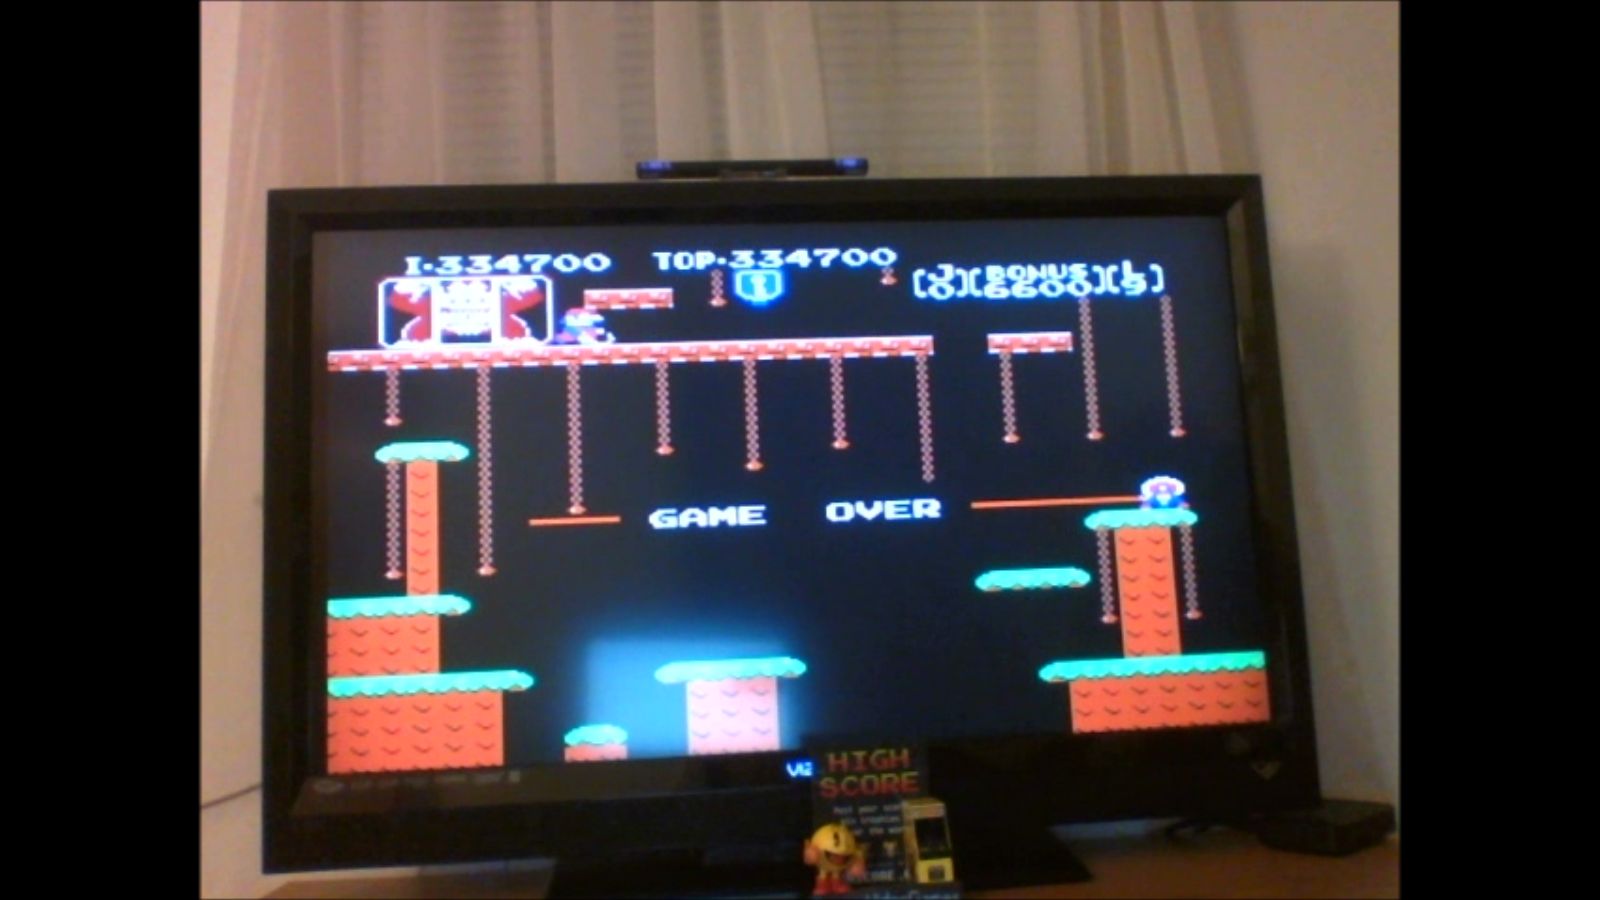 DuggerVideoGames: Donkey Kong Jr: Game B (NES/Famicom Emulated) 334,700 points on 2016-11-12 21:01:57